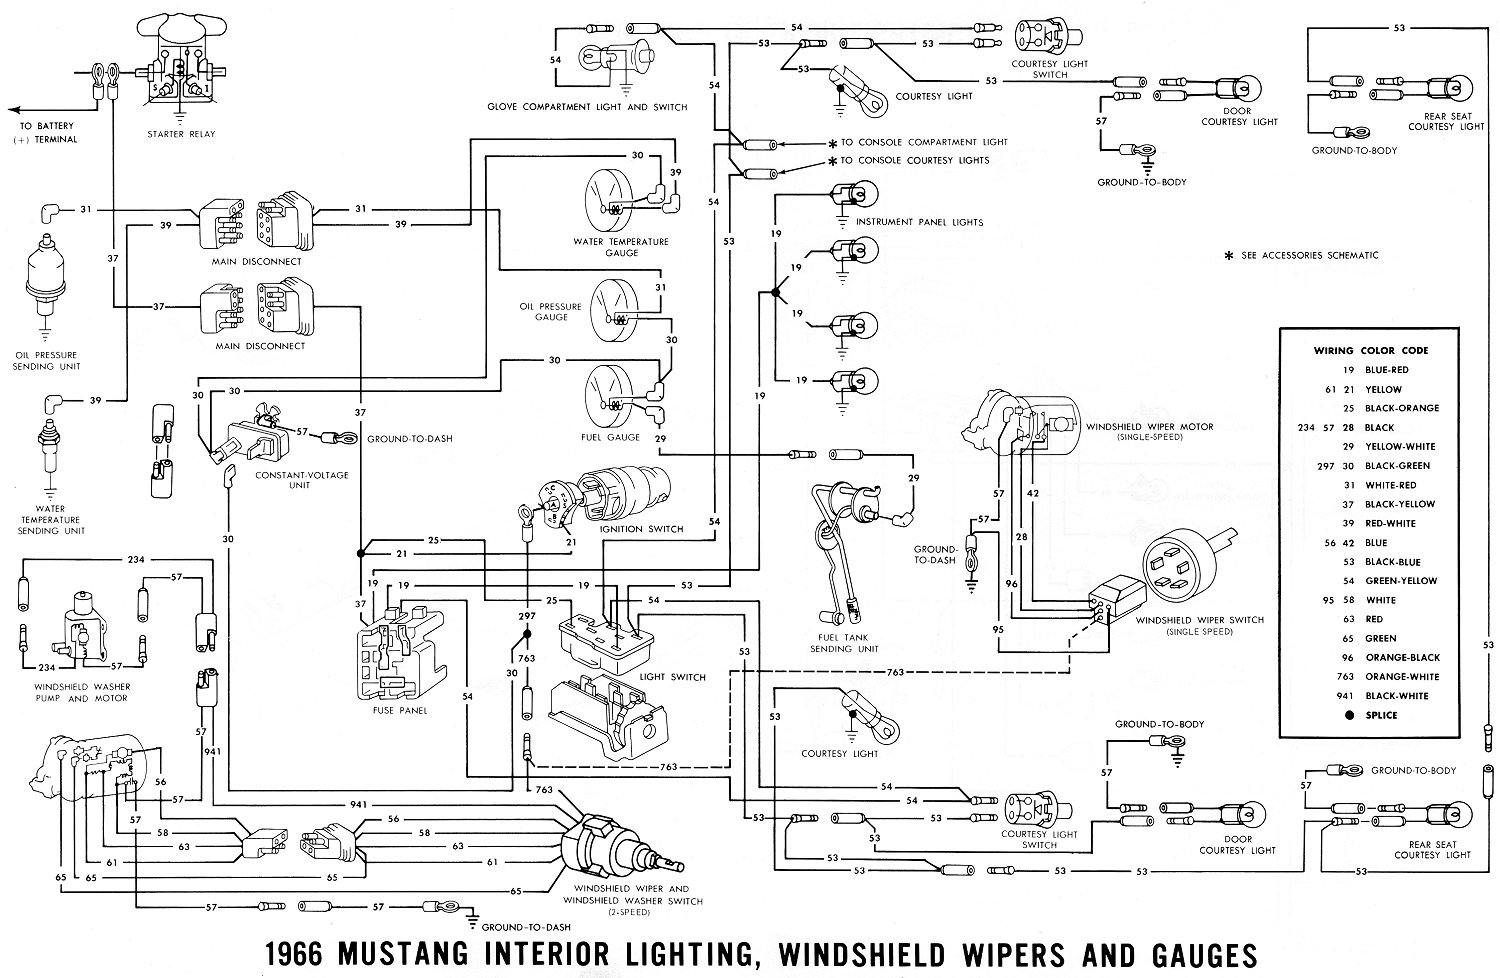 66inter1 66 mustang wiring diagram radio tape 66 mustang turn signal wiring PCM Mustang Football at gsmx.co